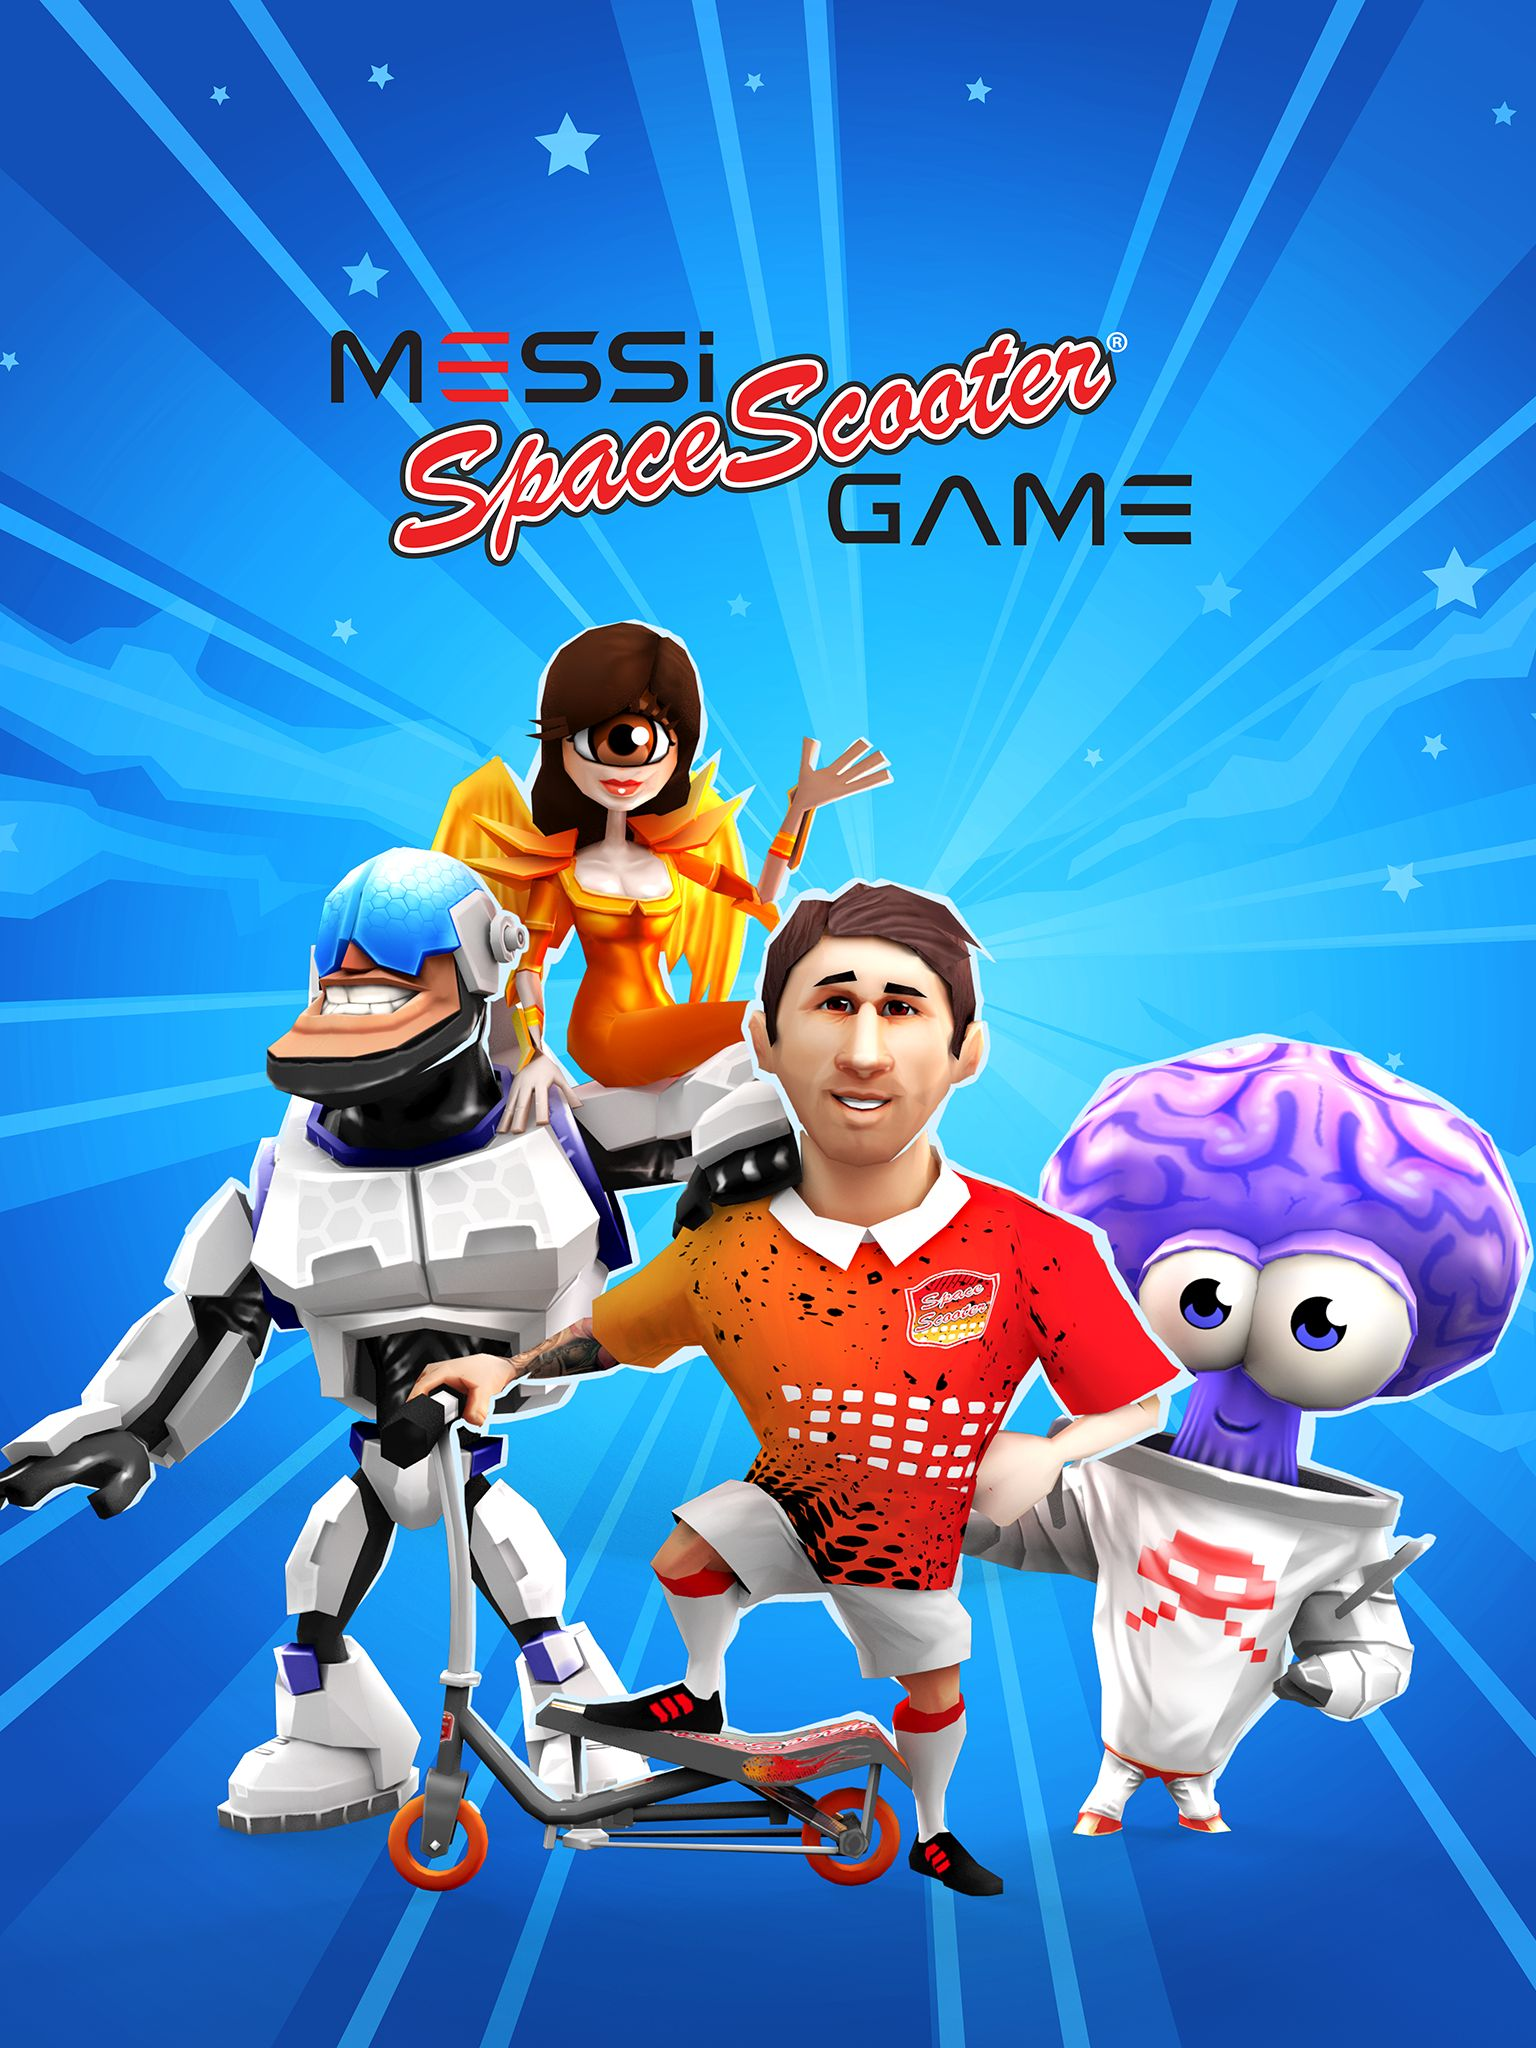 Messi has his own space scooter game meet the members of the messi space scooter game m4hsunfo Choice Image